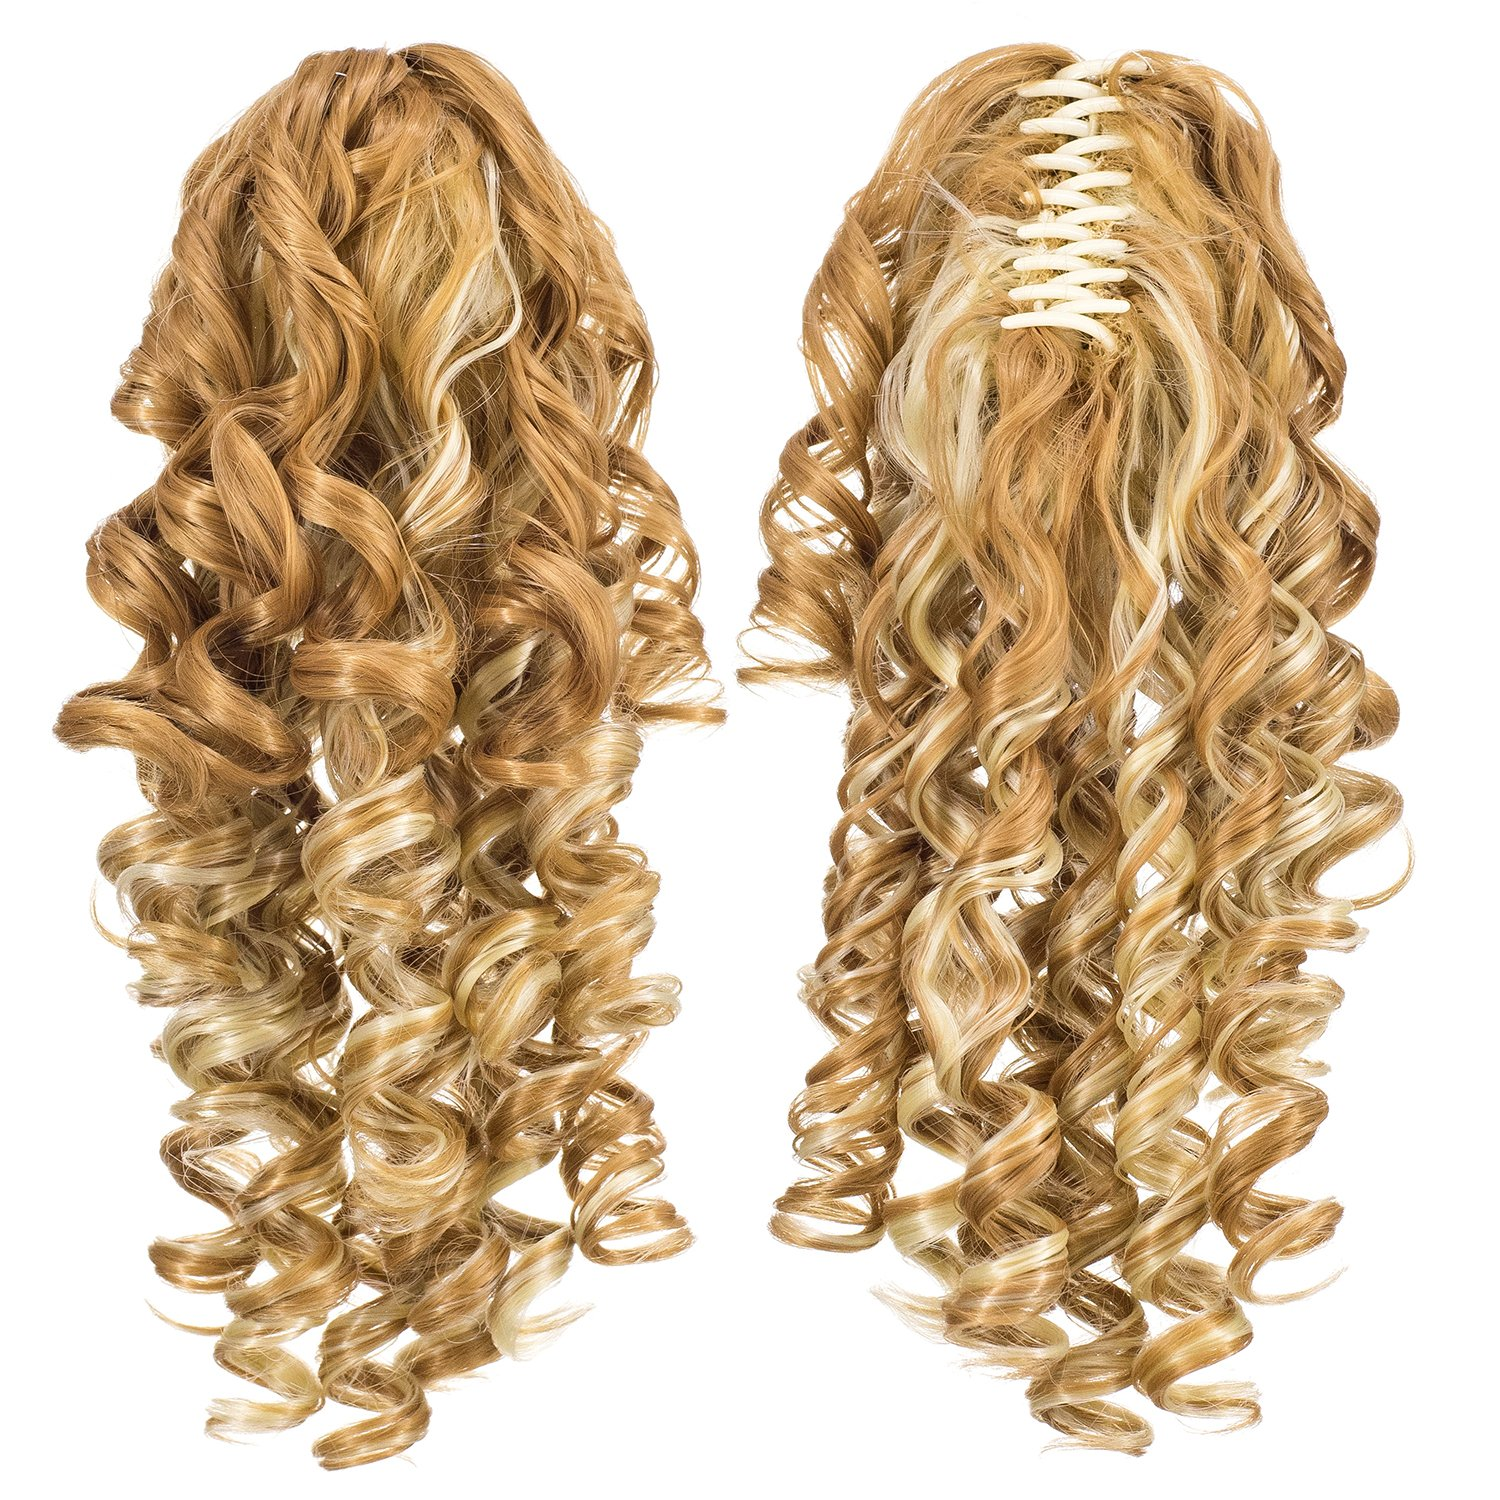 Amazon Spiral Curly Hair Piece Blonde Mix Ponytail Irish Dance